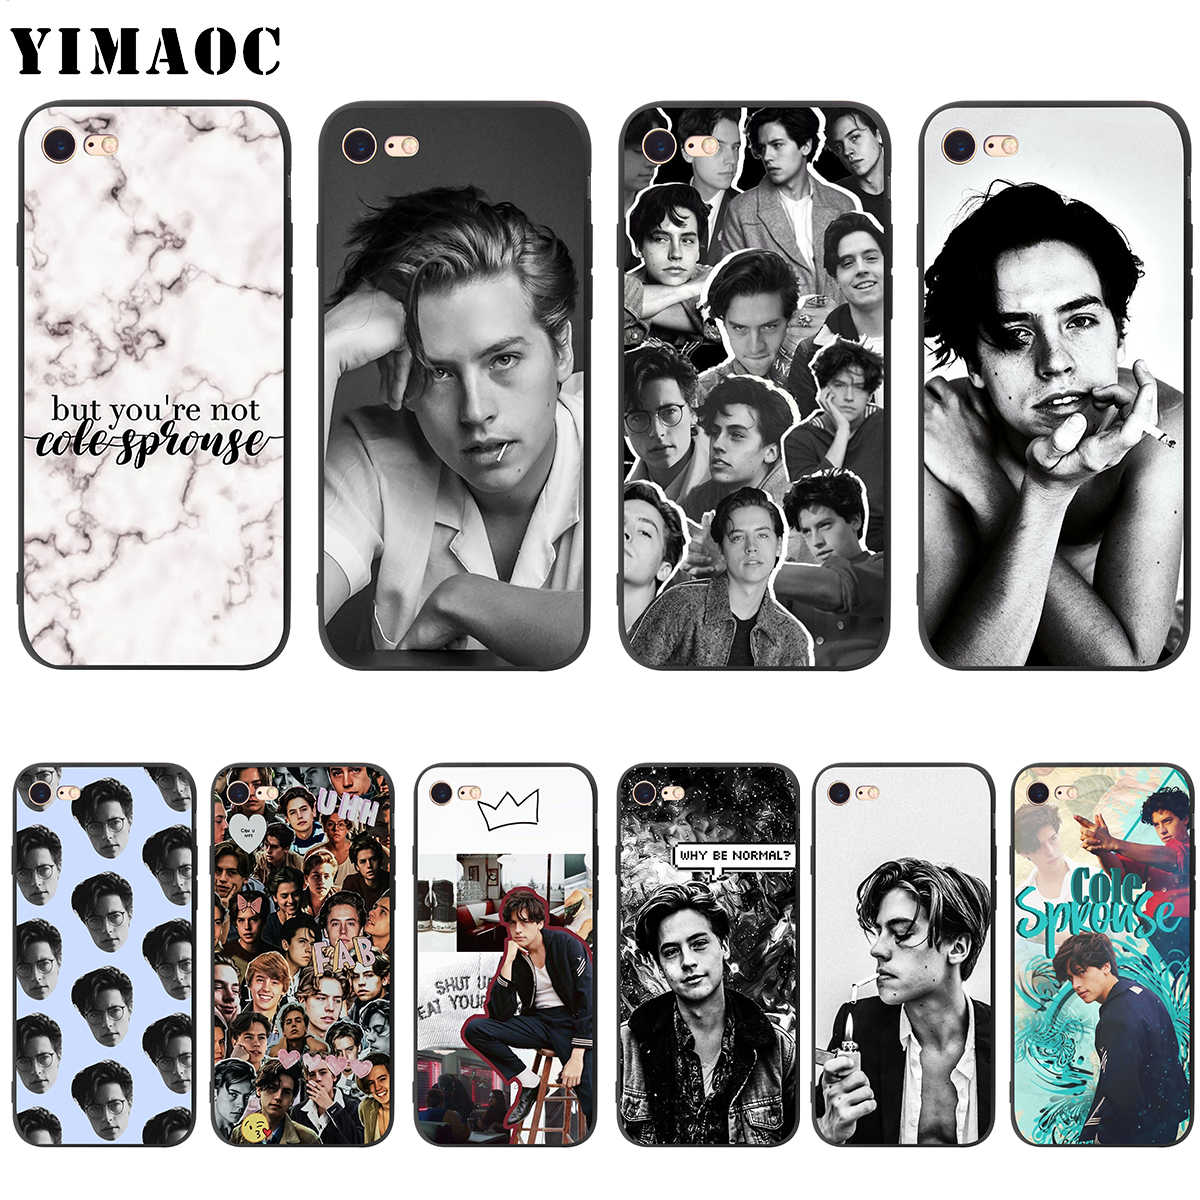 YIMAOC Cole Sprouse Soft Silicone Case for iPhone 11 Pro XS Max XR X 8 7 6 6S Plus 5 5s se